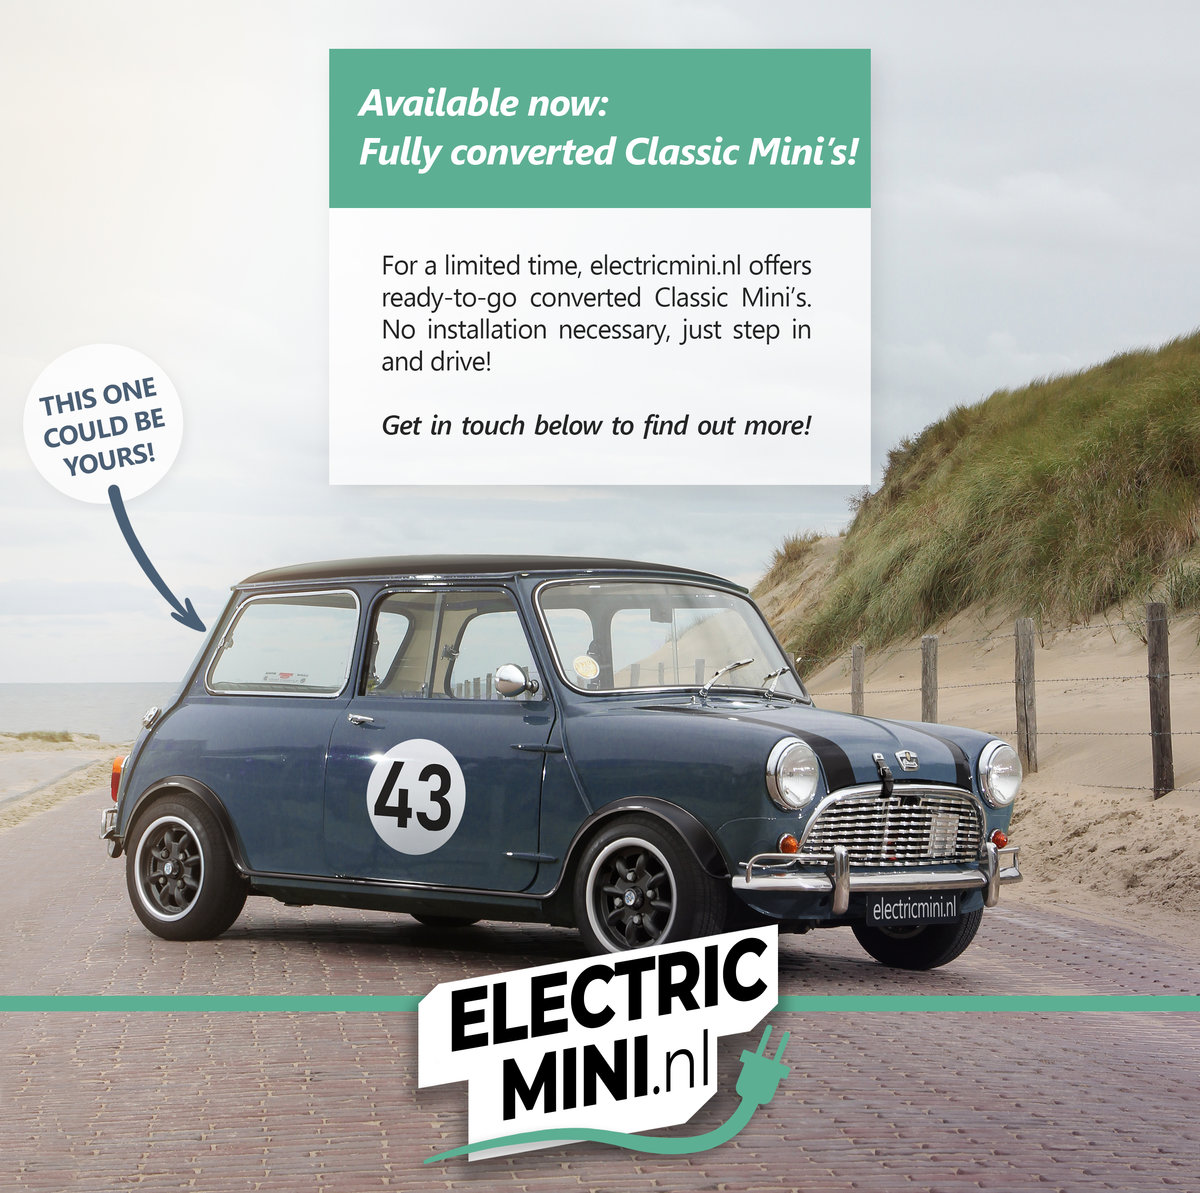 1968 Electric classic Mini - sold with reservation For Sale (picture 1 of 1)